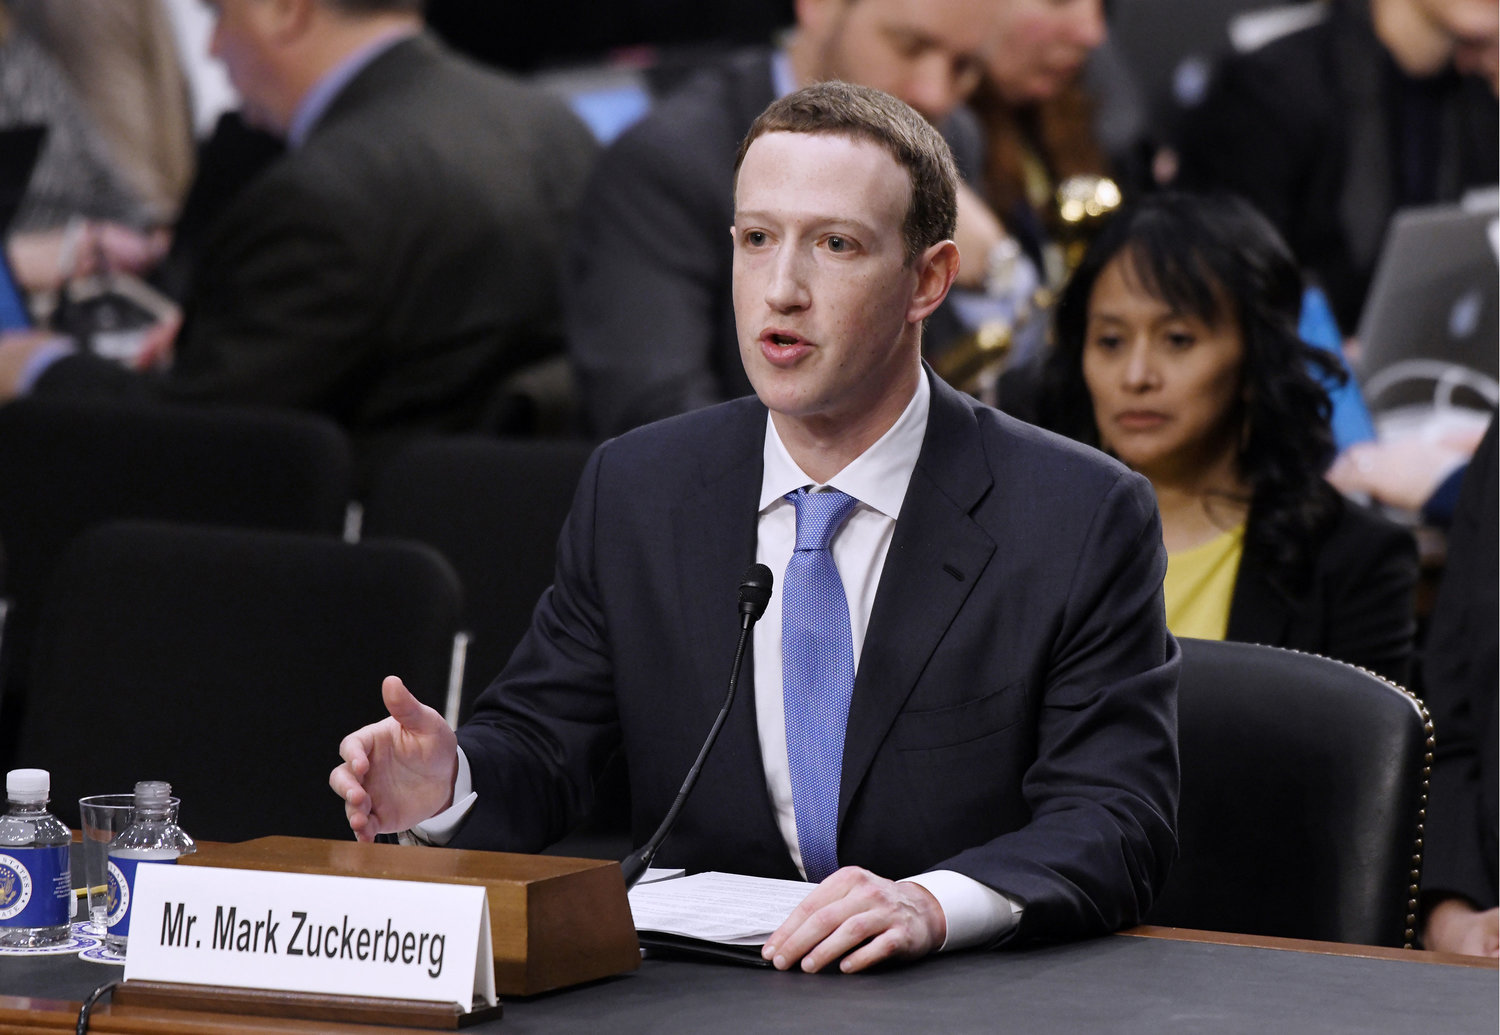 Facebook CEO Mark Zuckerberg testifies before the Senate judiciary and commerce committees on Capitol Hill on April 10, 2018, in Washington, D.C.